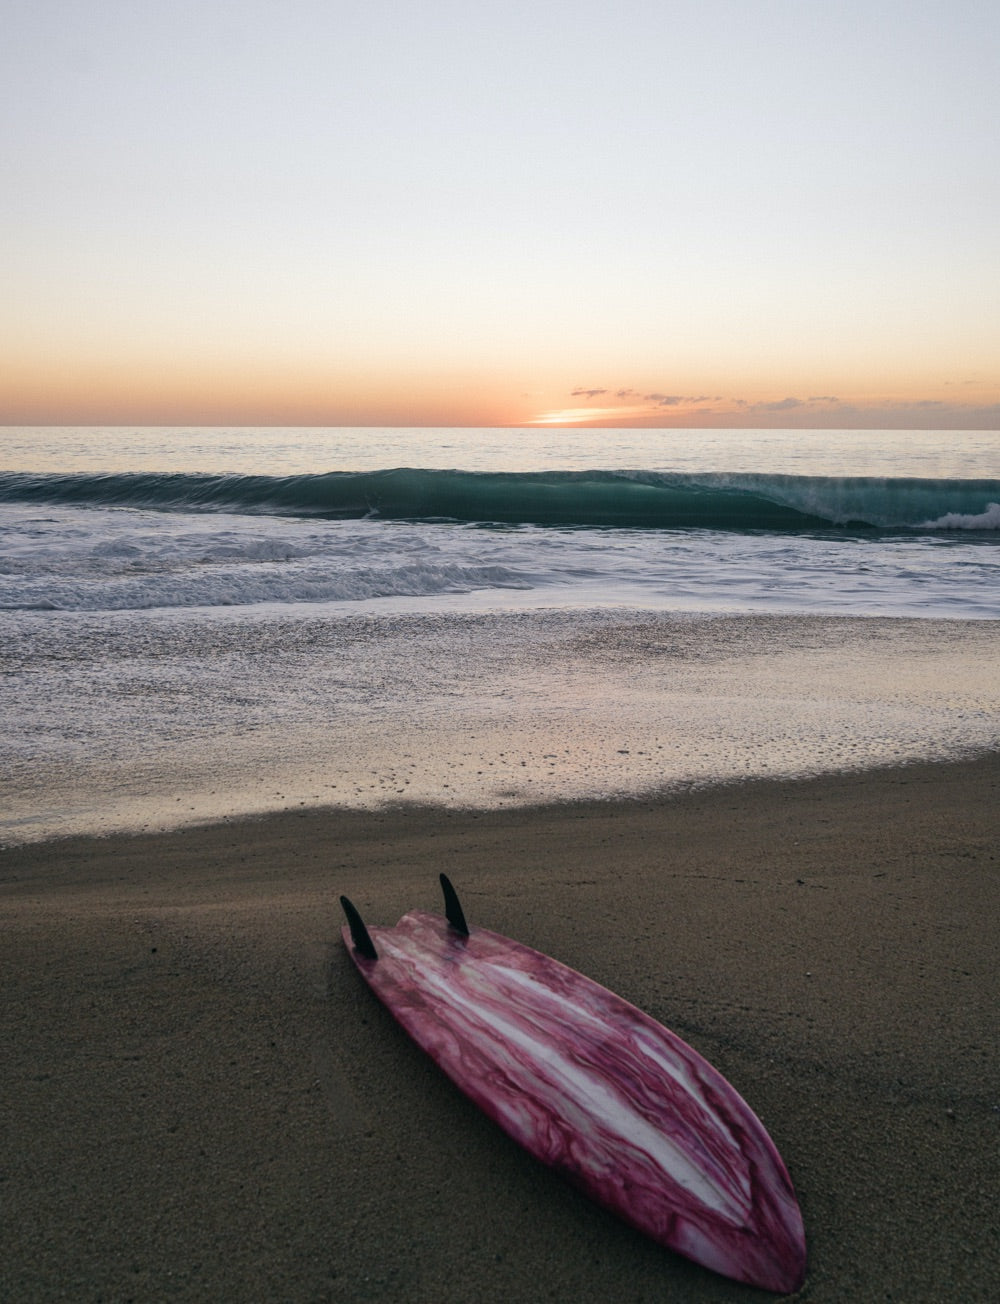 A twin fin surfboard lays in the sand at sunset as a wave breaks in the background